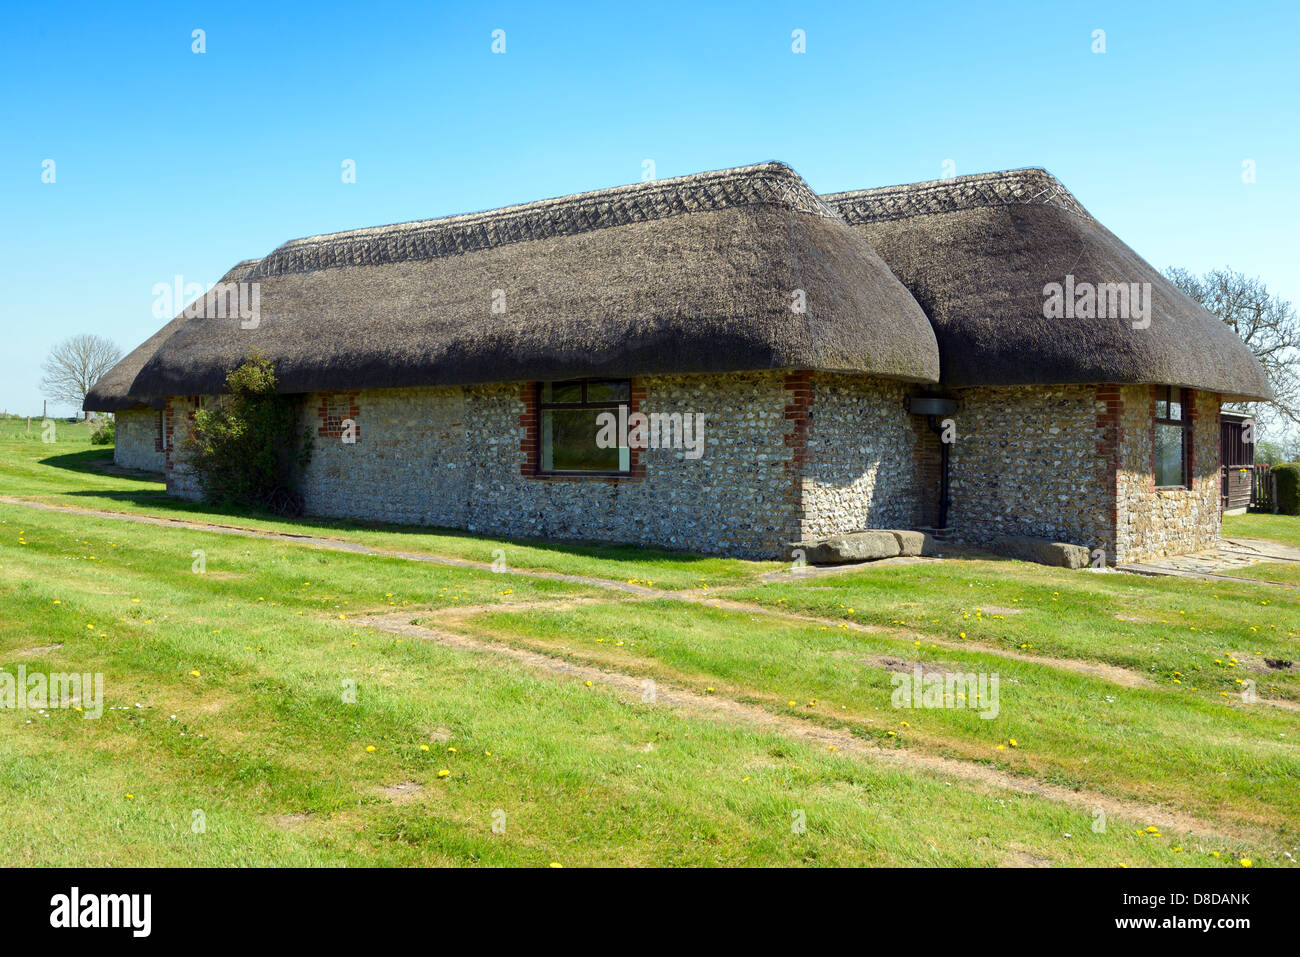 Traditional Sussex thatched barns housing the mosaic floors at Bignor Roman villa, Bignor, West Sussex, UK - Stock Image